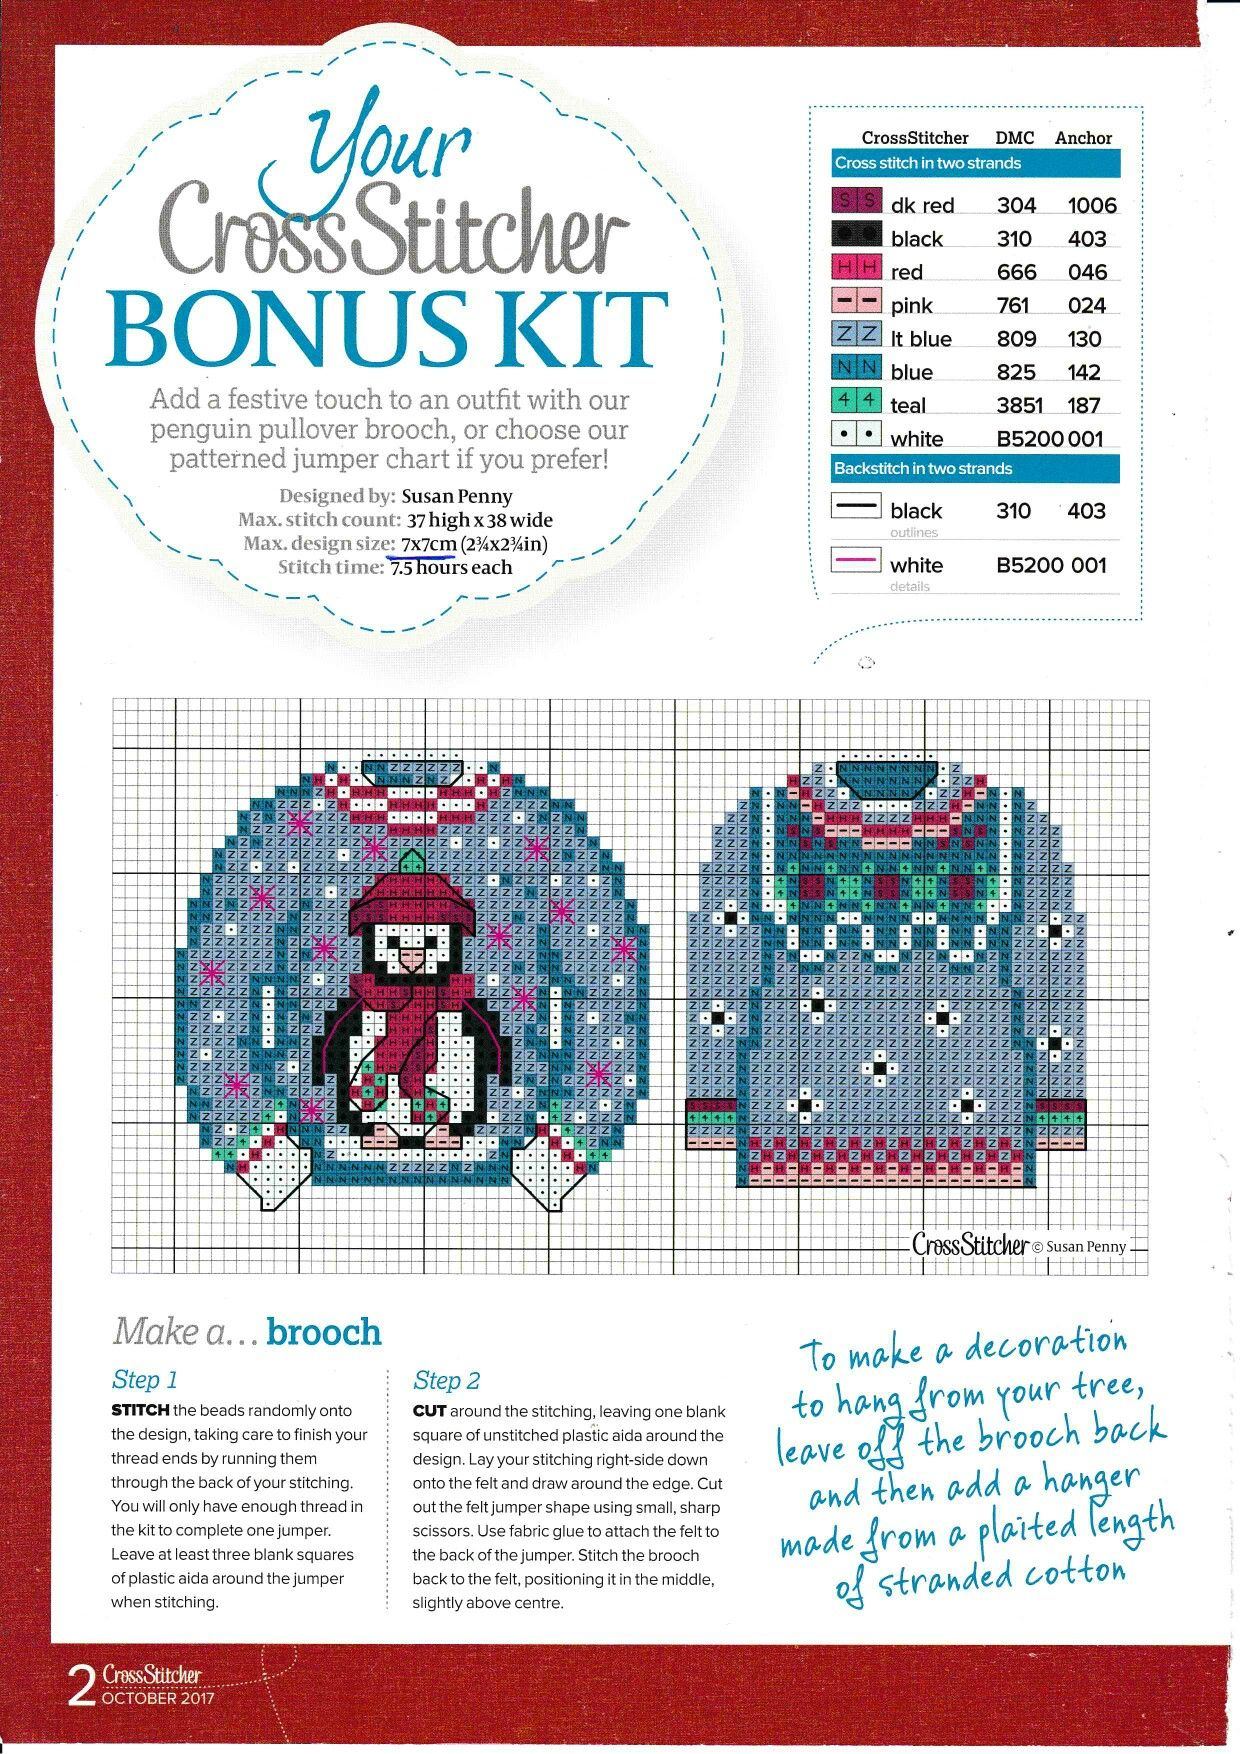 Pin by Clancy Kuehnle on Stitch Christmas Sweaters | Pinterest ...